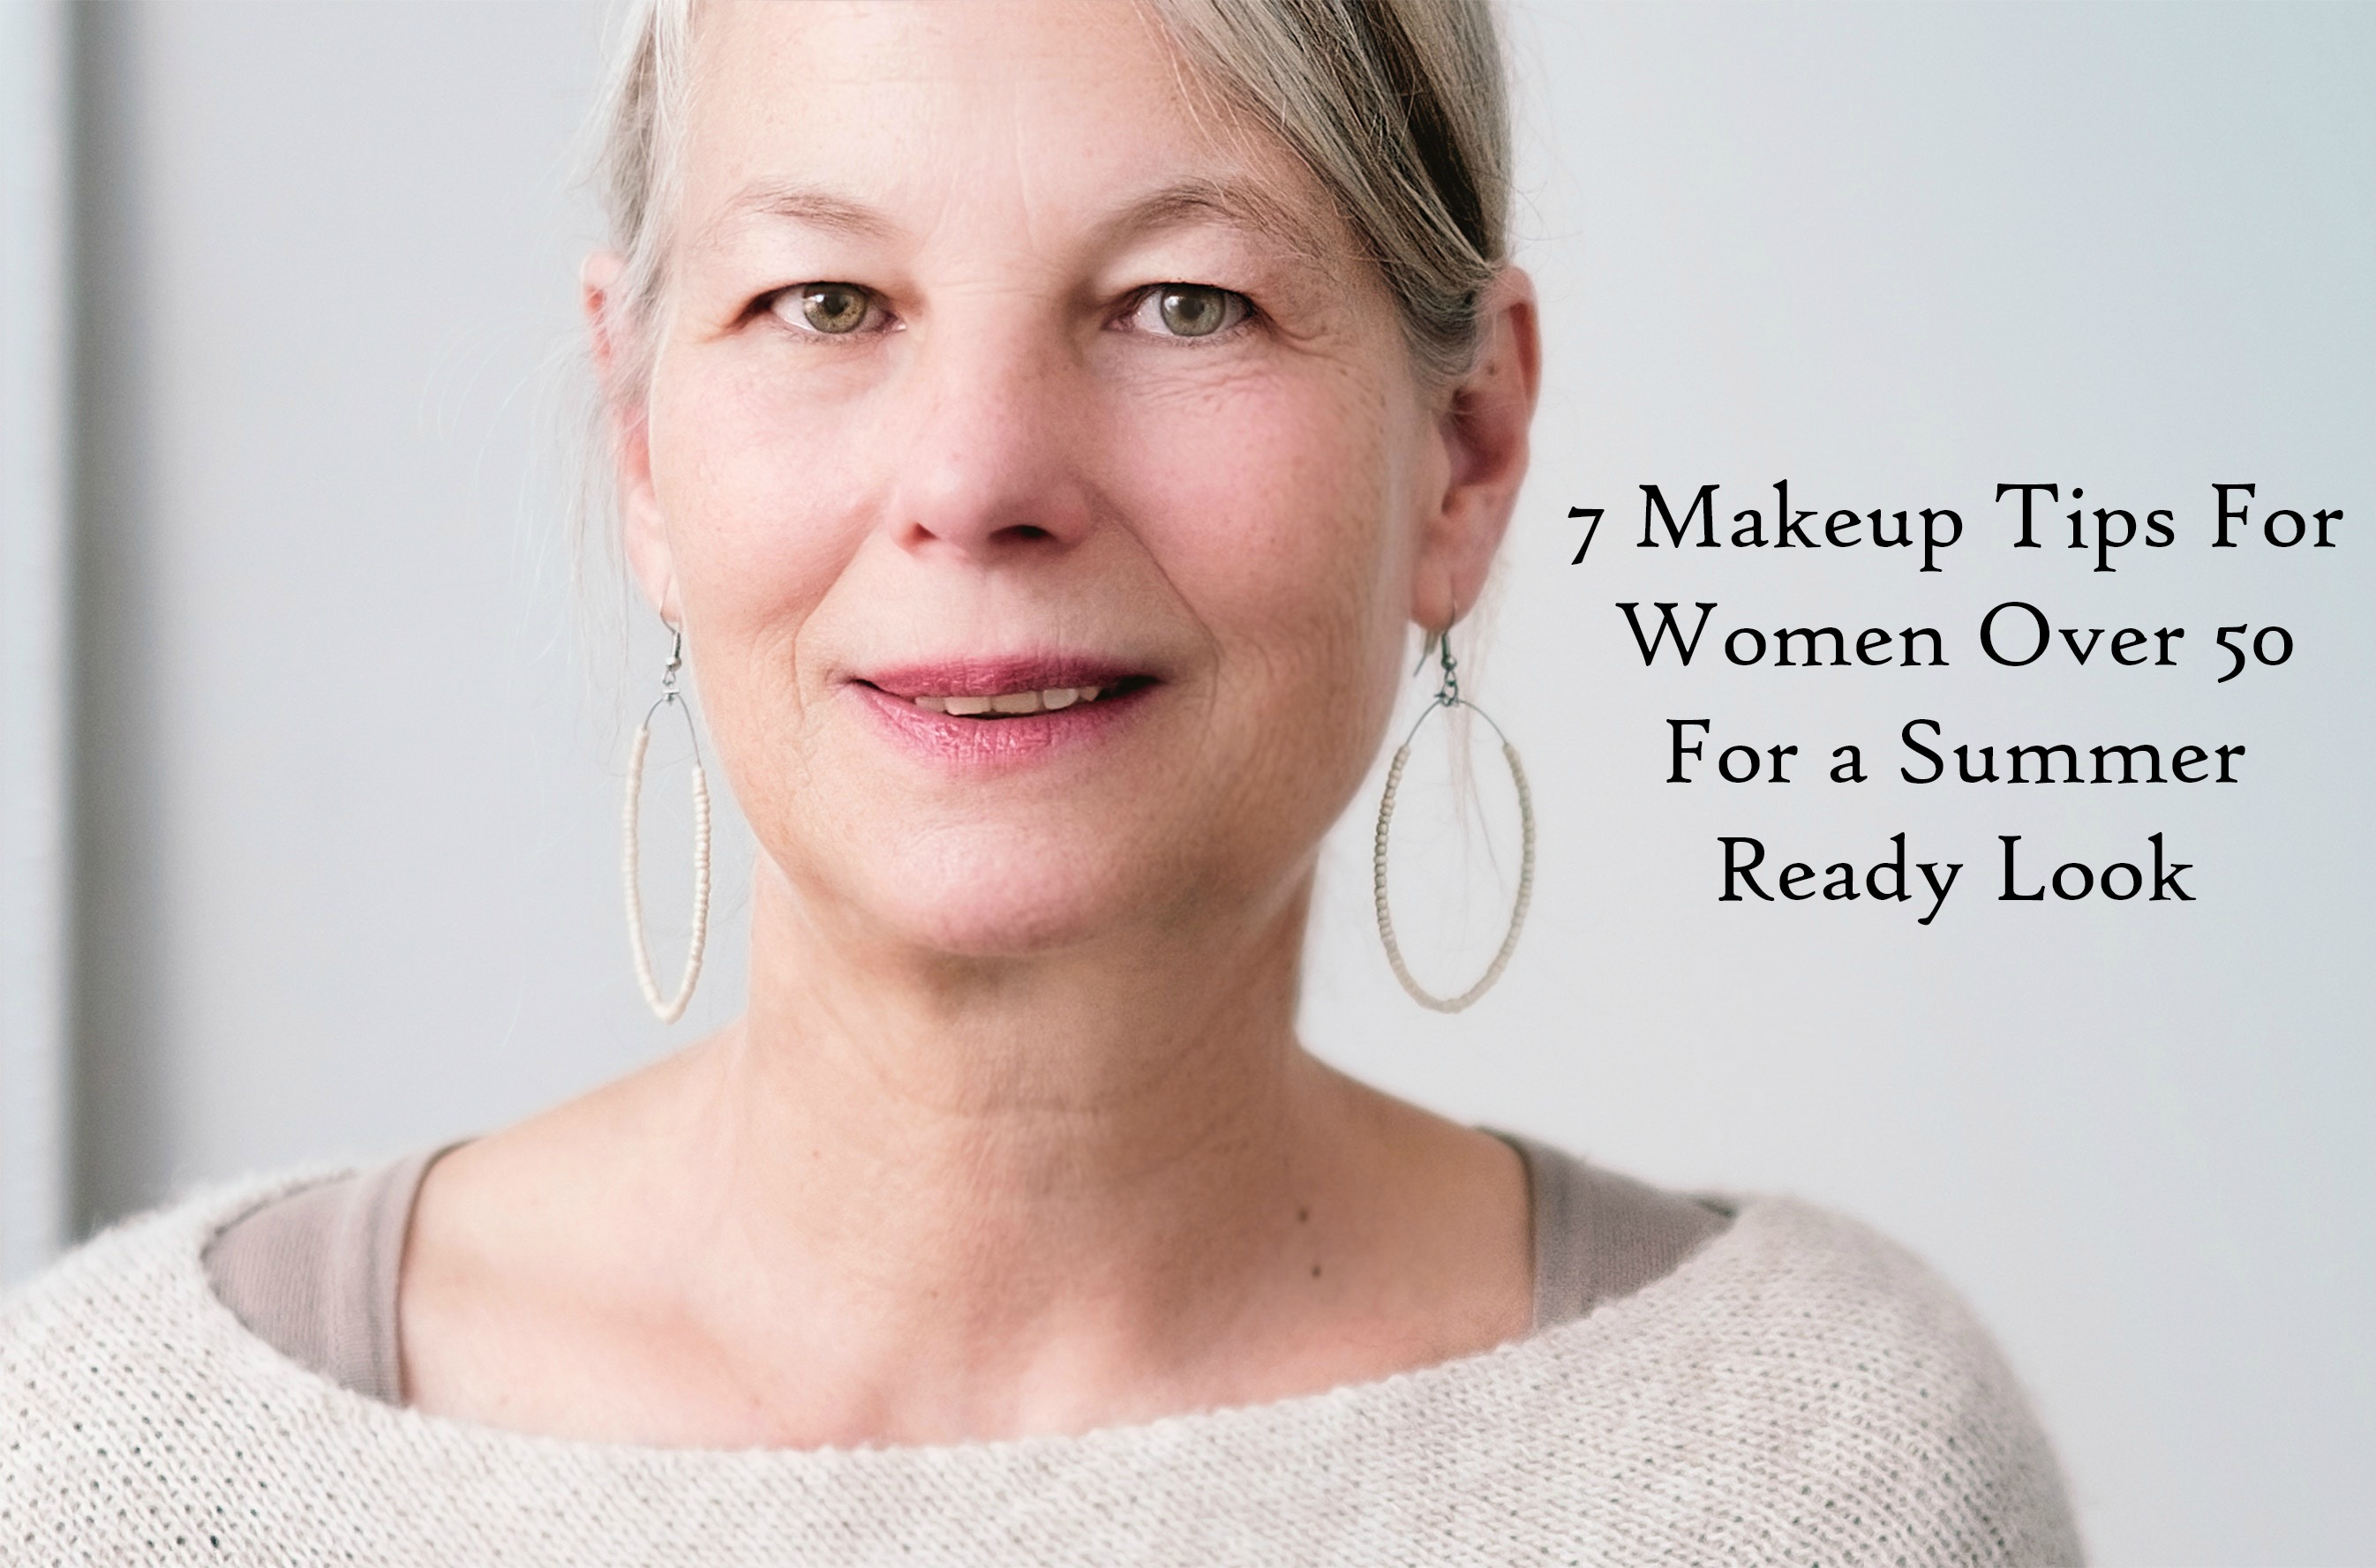 7 Makeup Tips for Women Over 50 For A Summer Ready Look ...